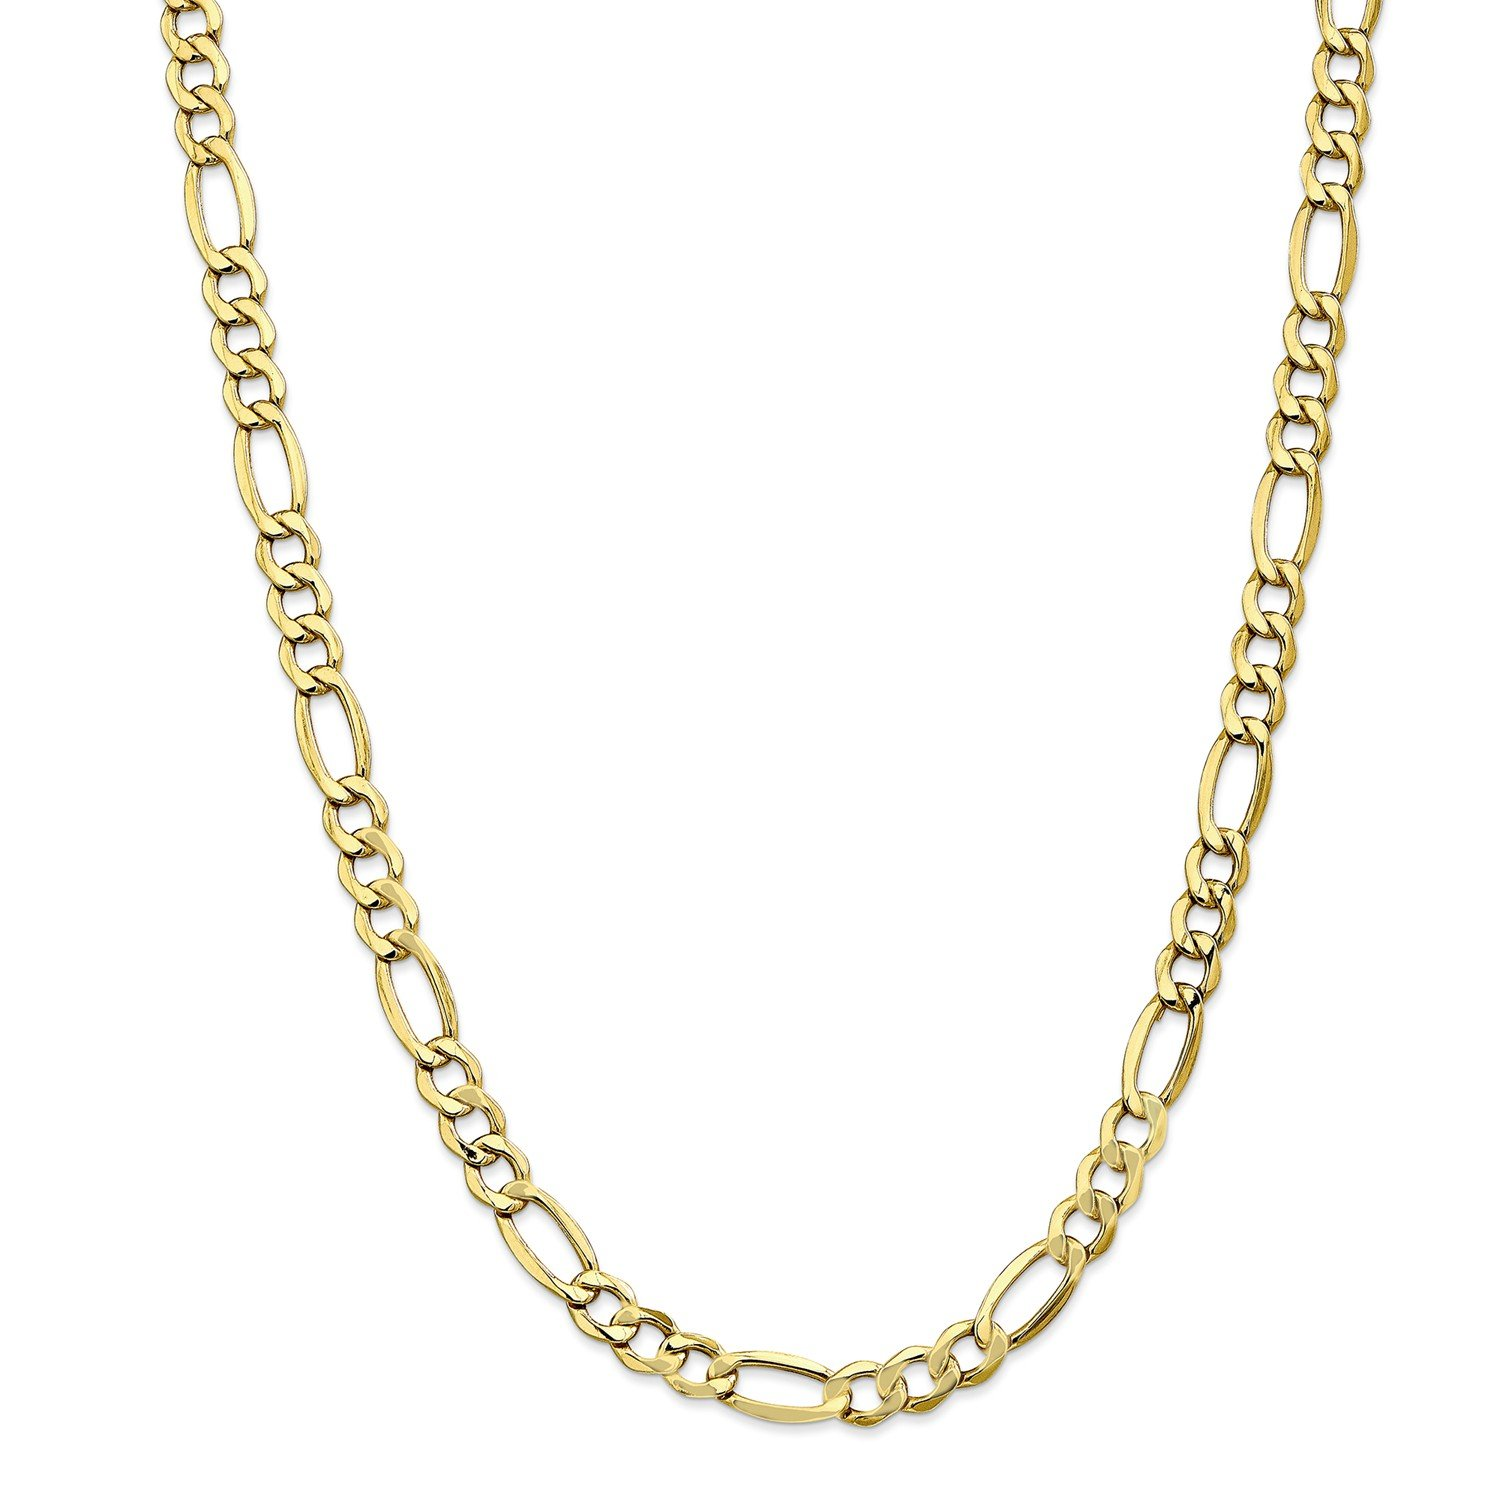 Roy Rose Jewelry 10K Yellow Gold 7.3mm Semi-Solid Figaro Link Chain Bracelet ~ Length 7'' inches